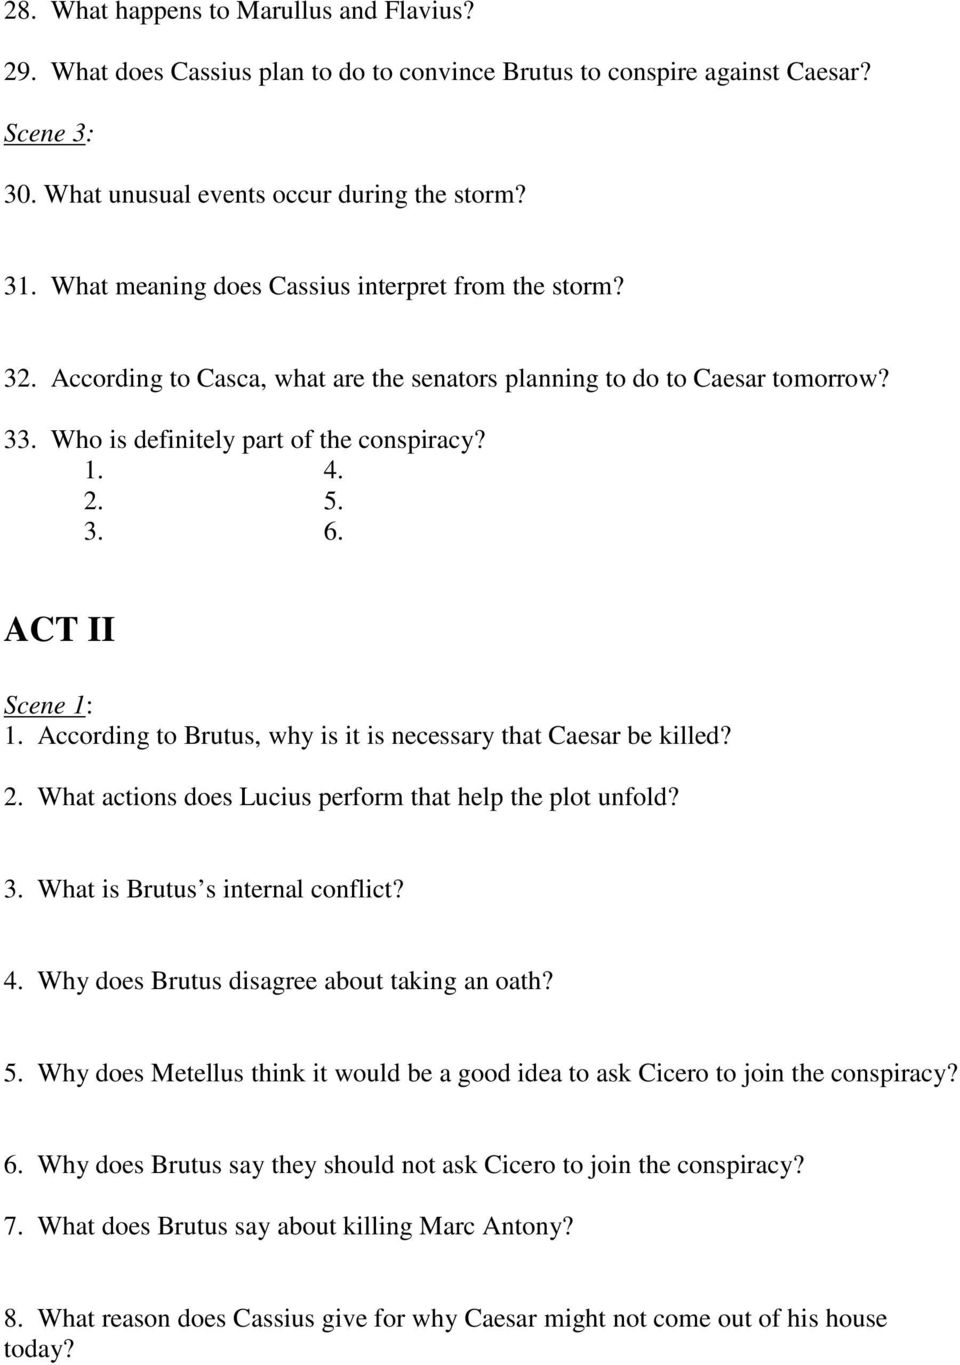 what does brutus say about killing marc antony